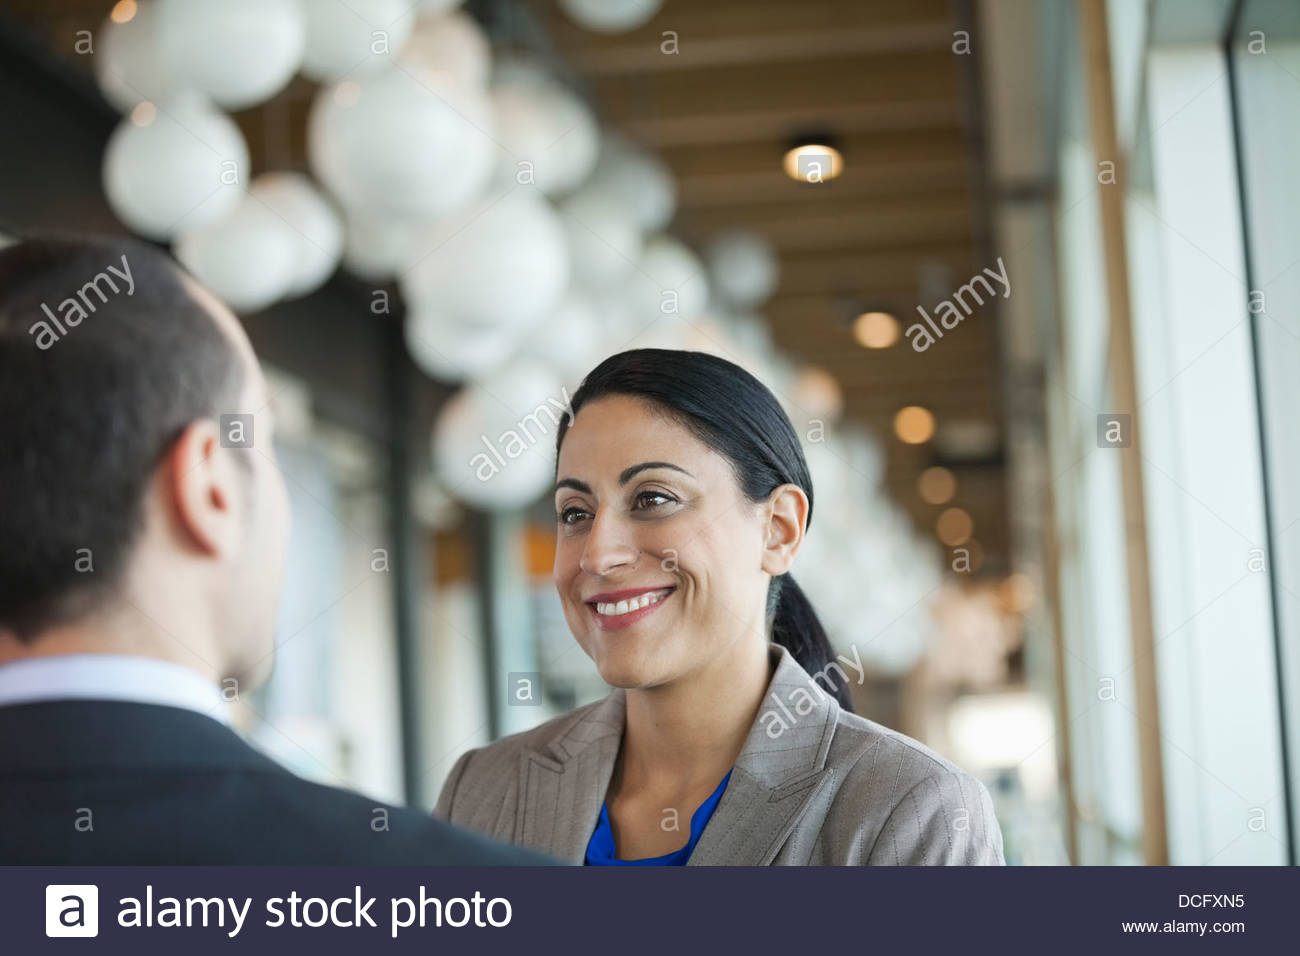 Smiling businesswoman looking at male colleague - Stock Image